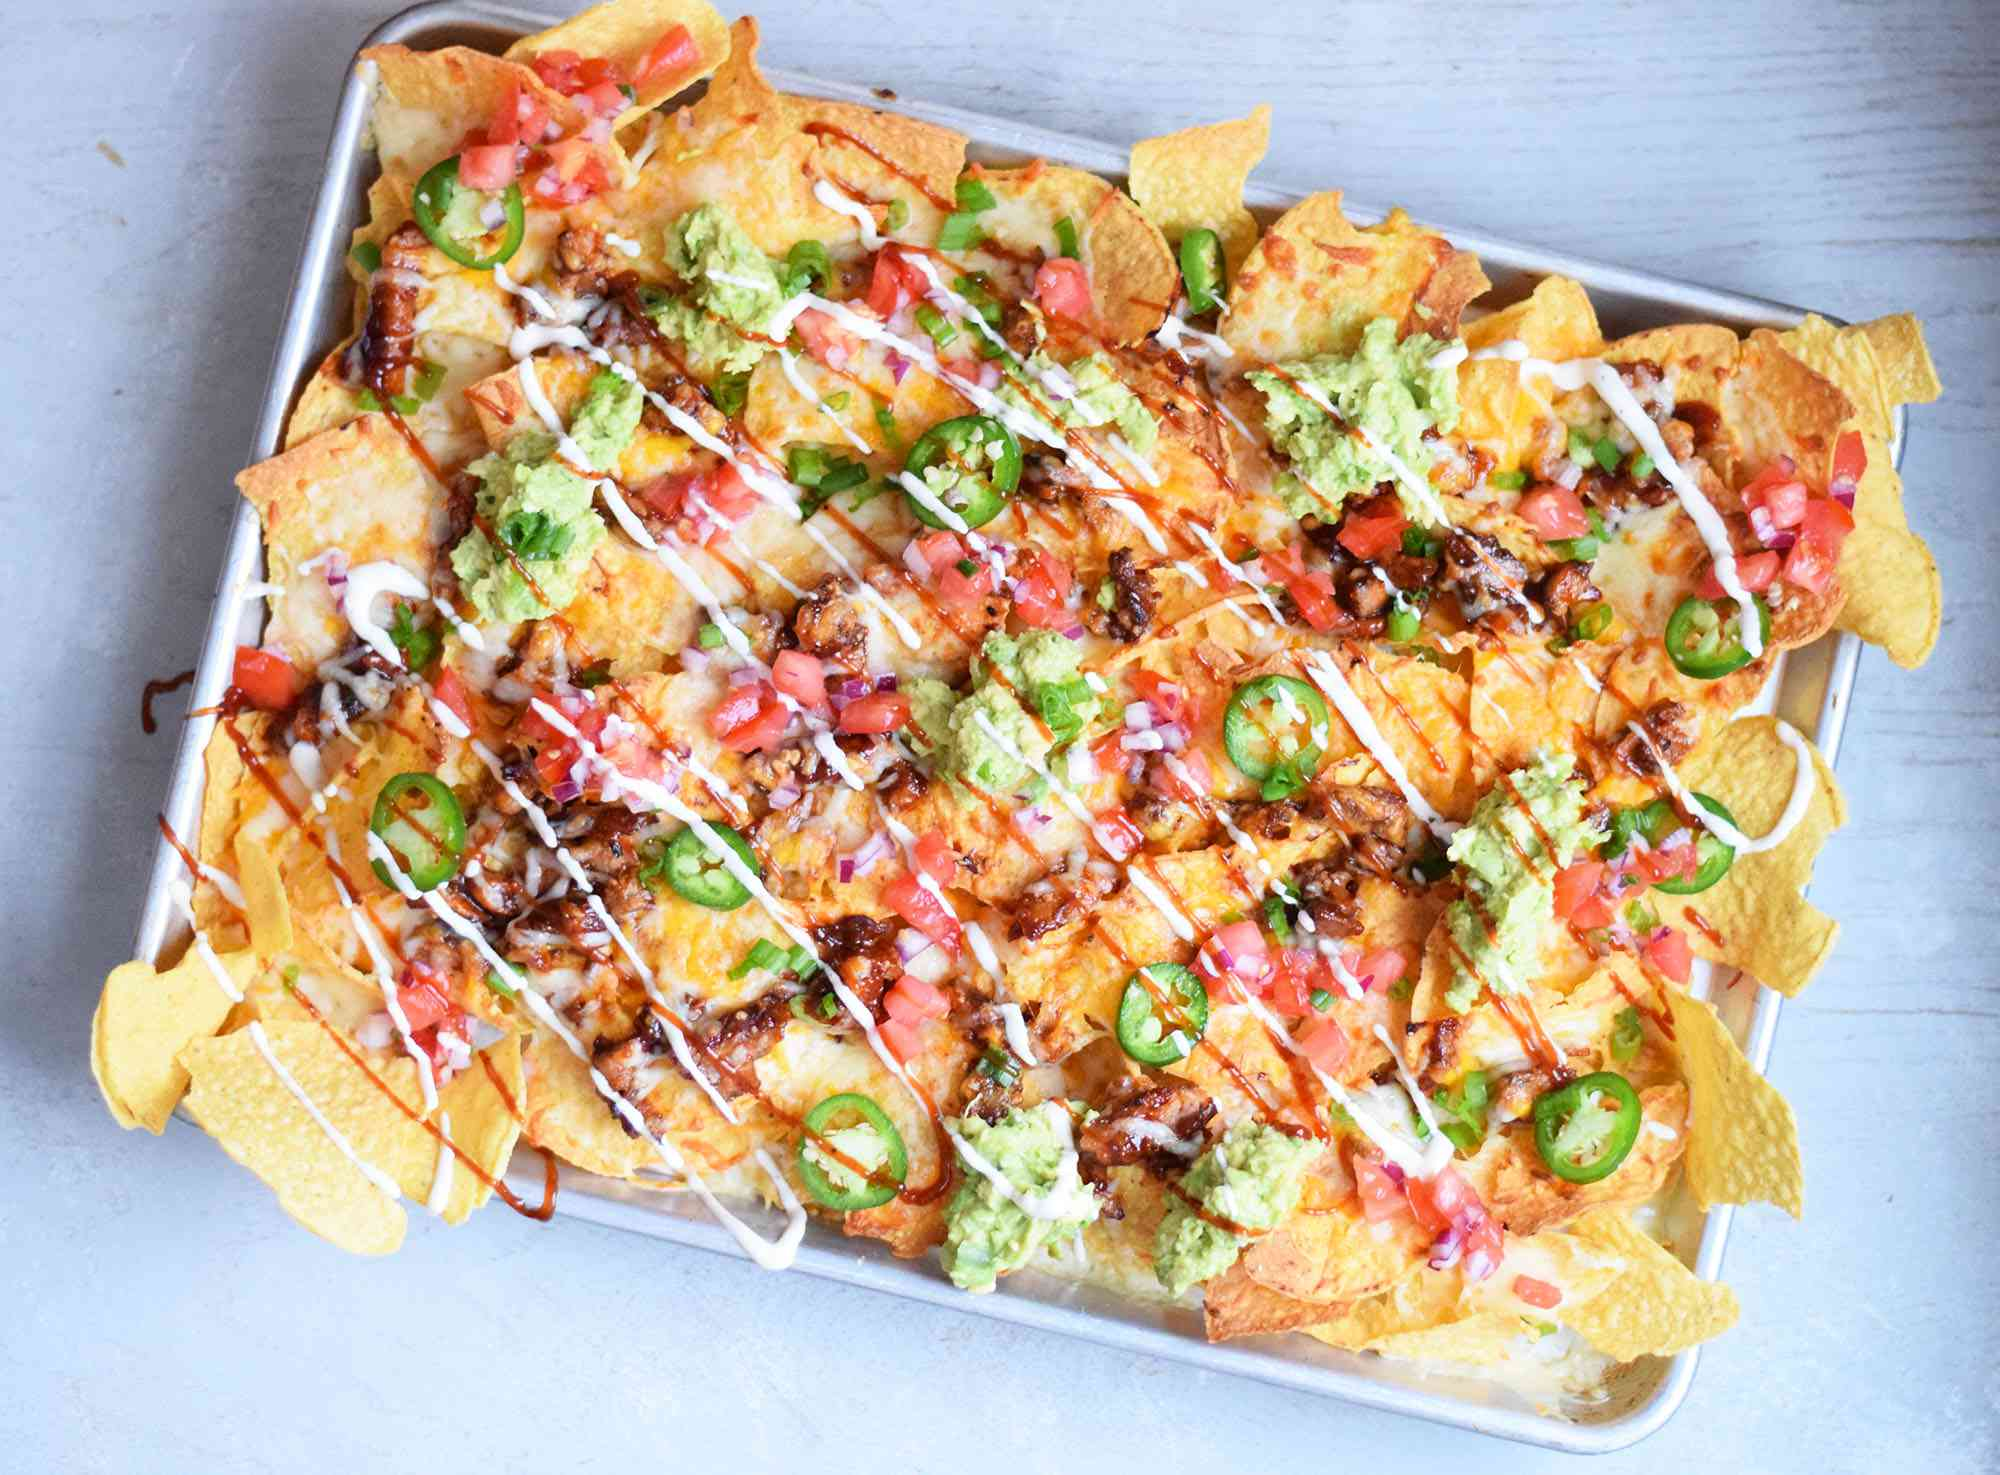 nachos topped with barbecue sauce